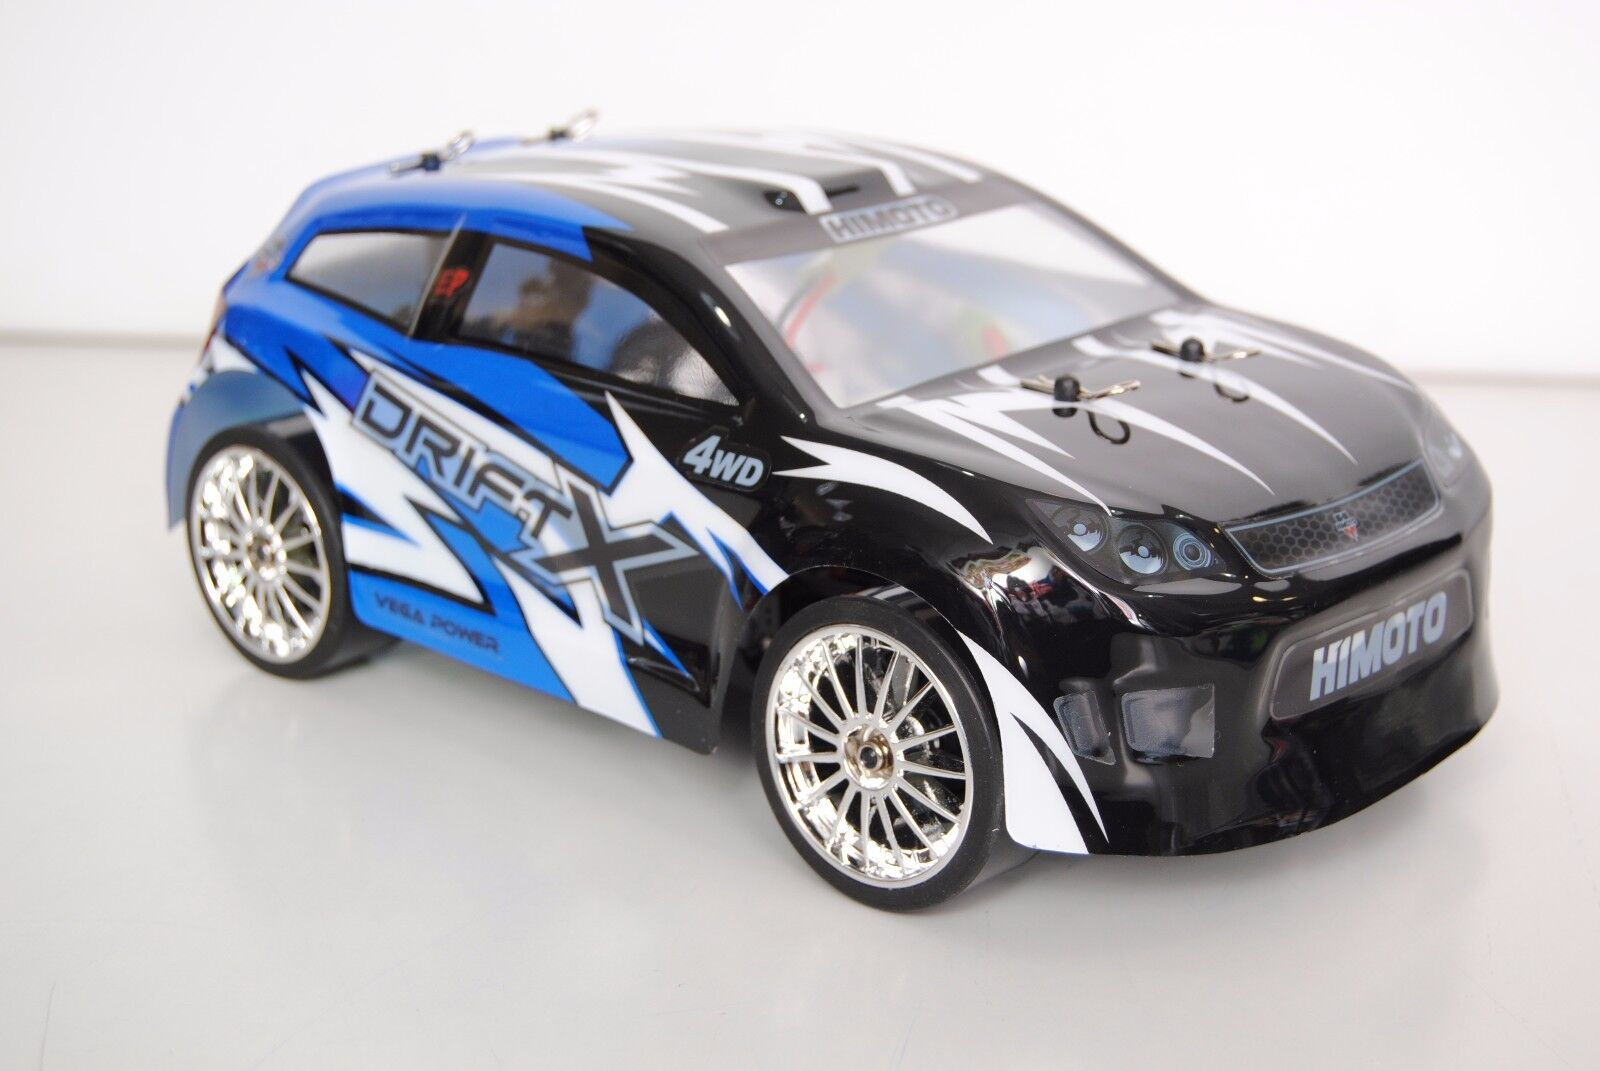 E18DT-B MODEL CAR Electrical 4x4 HIMOTO Drift 1 18 CAR MODEL HIMOTO